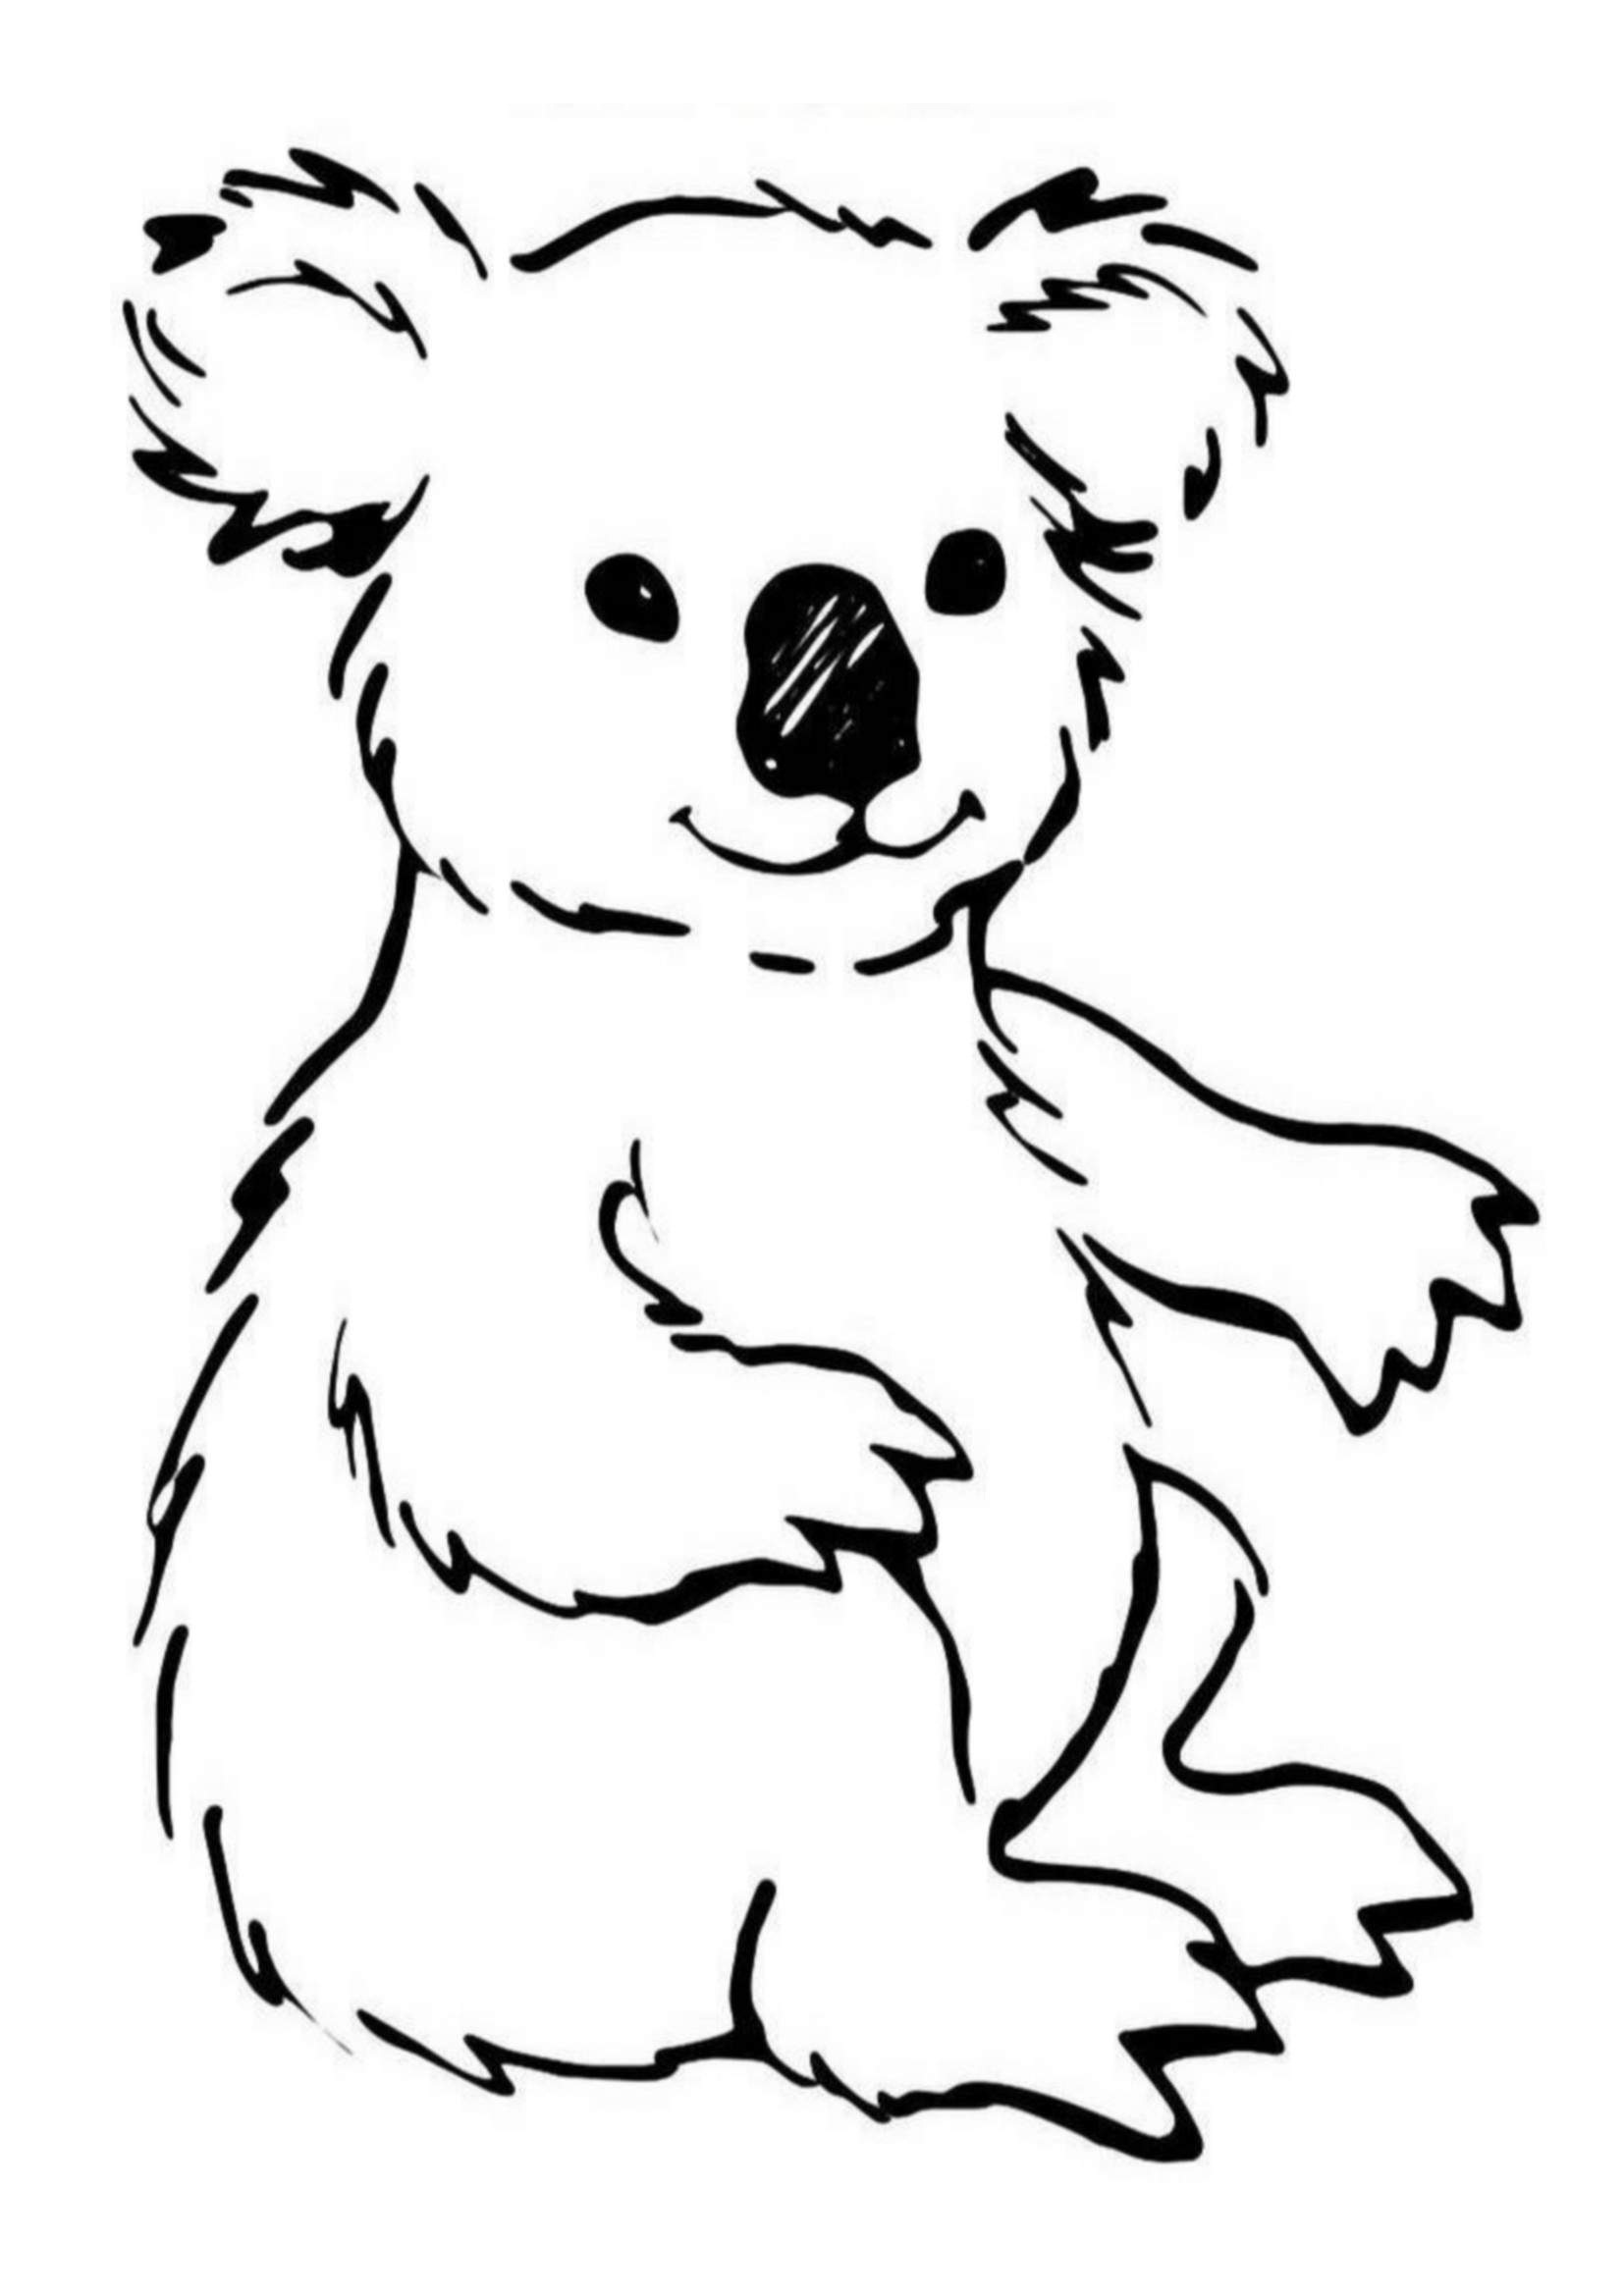 coloring page koala koala coloring pages for kids top 10 koala coloring koala coloring page